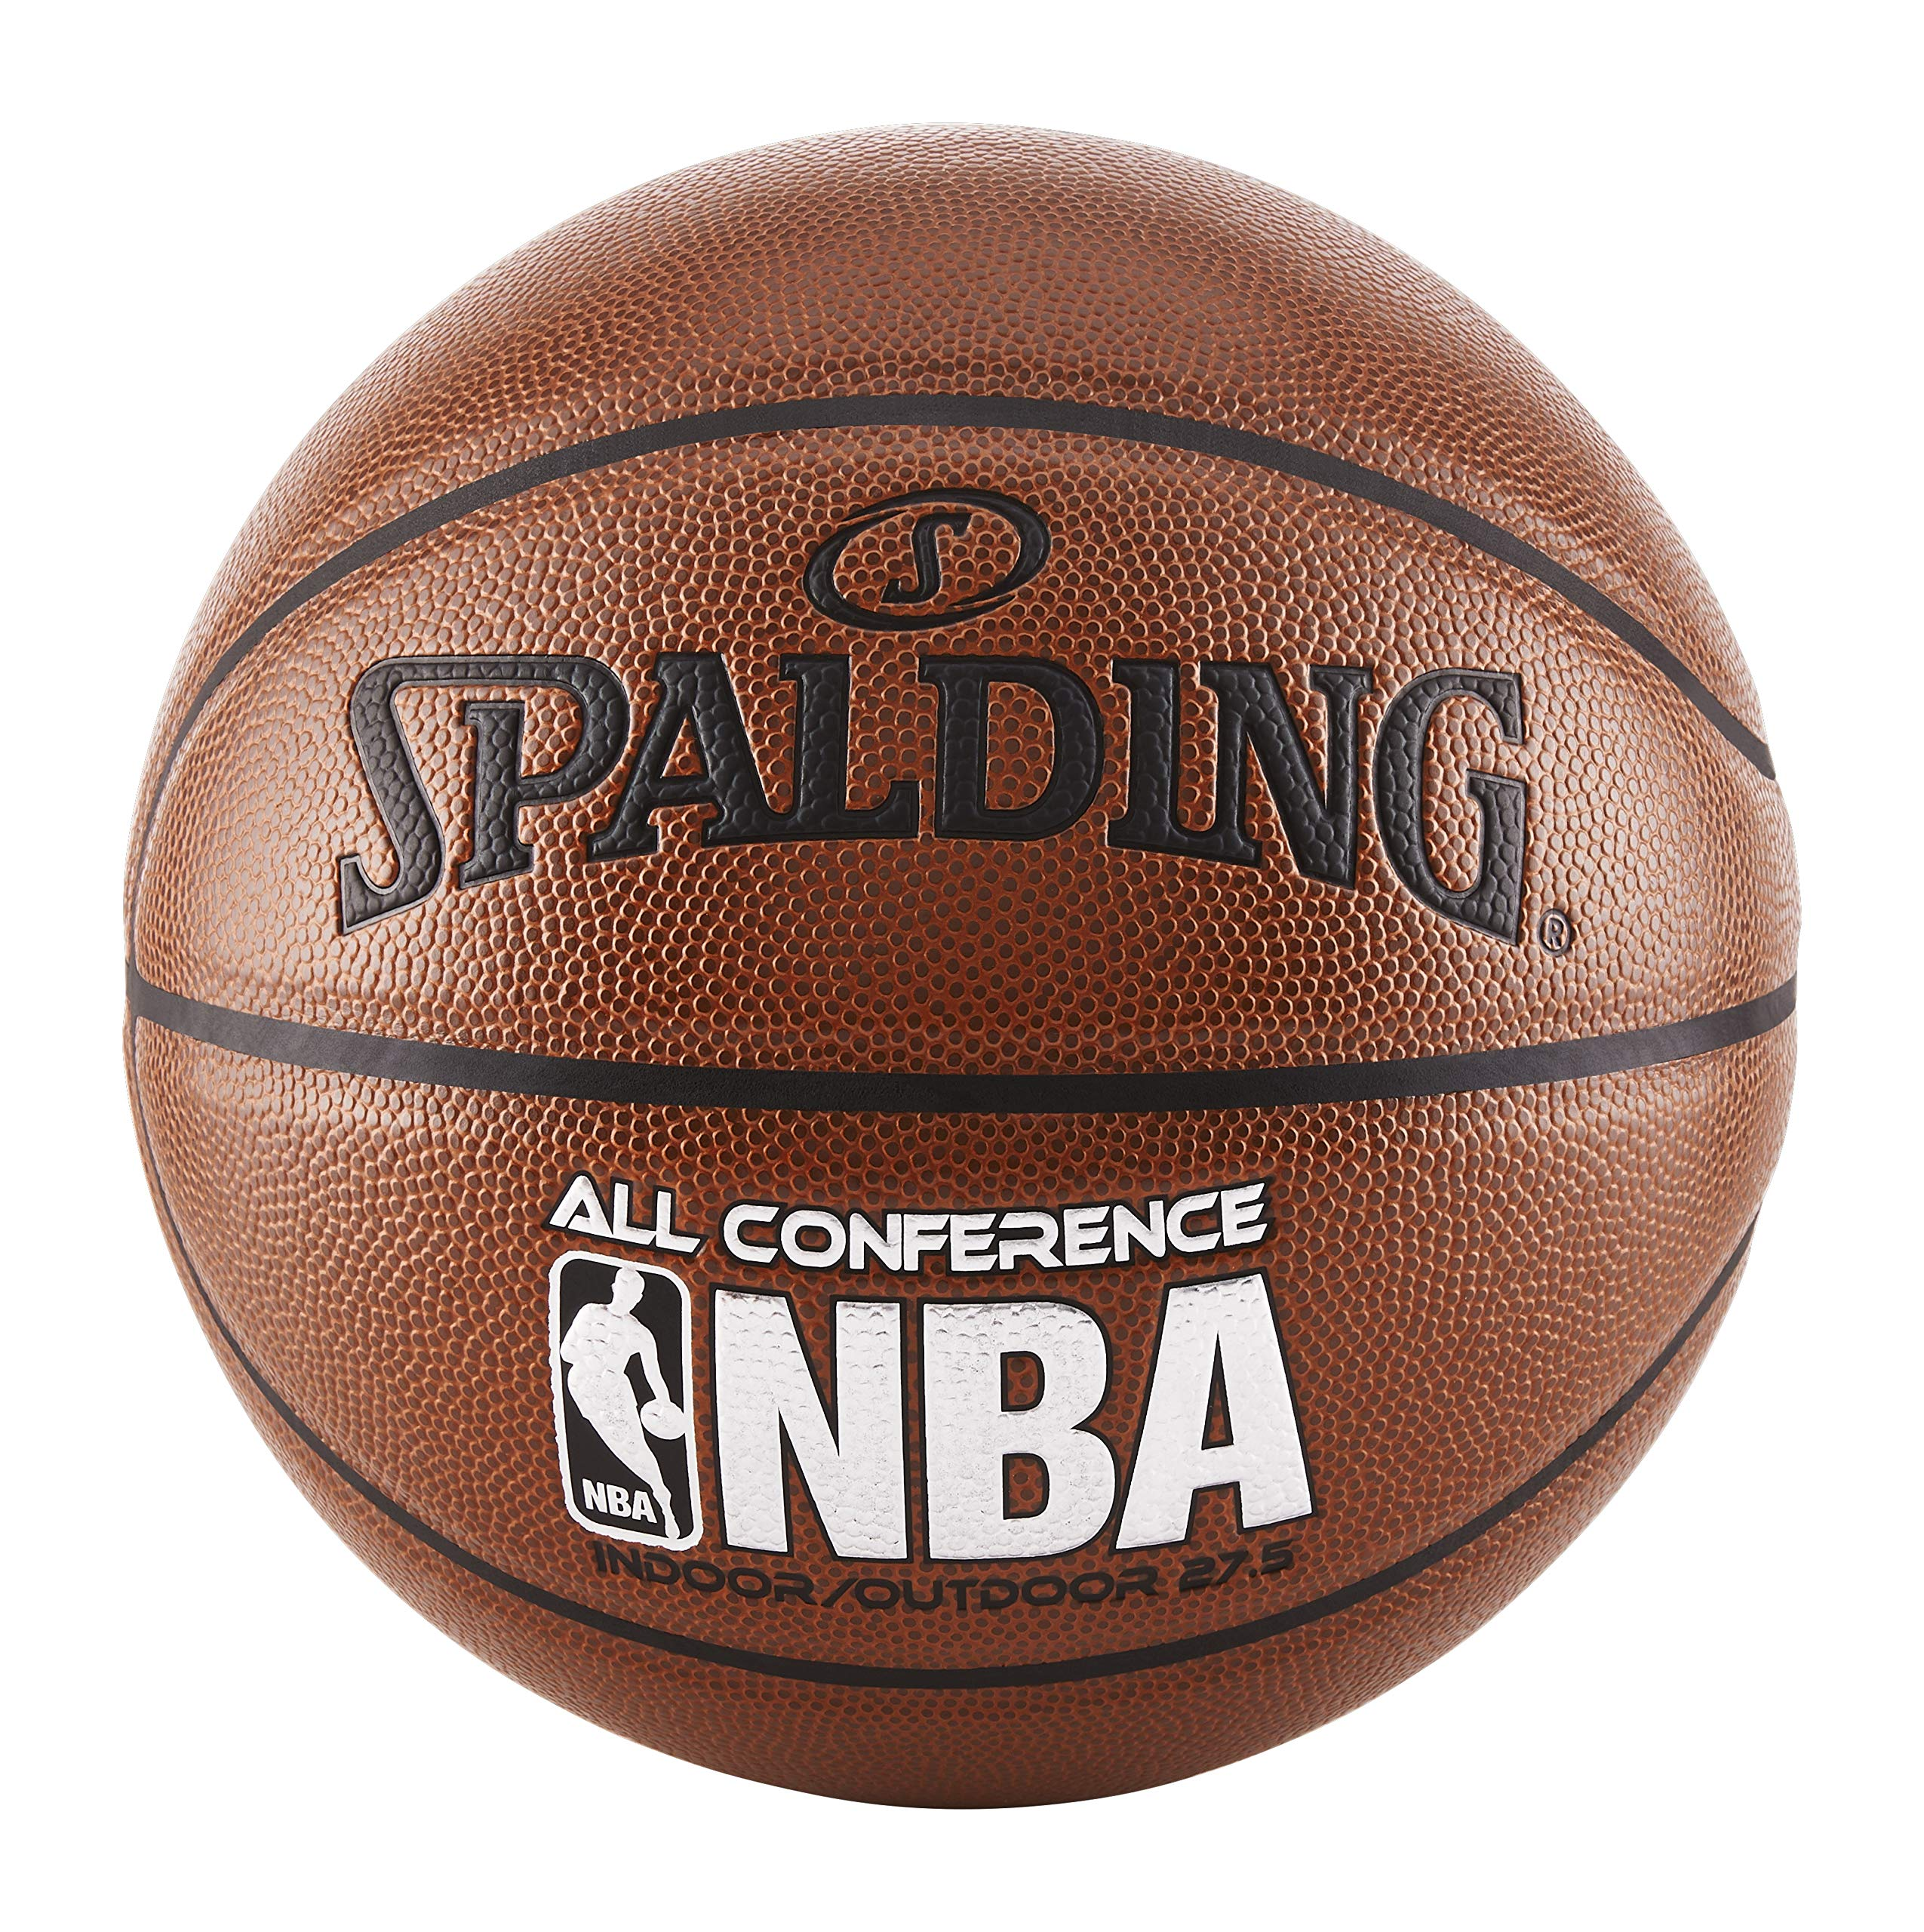 Spalding All Conference Basketball (Youth Size, 27.5'')